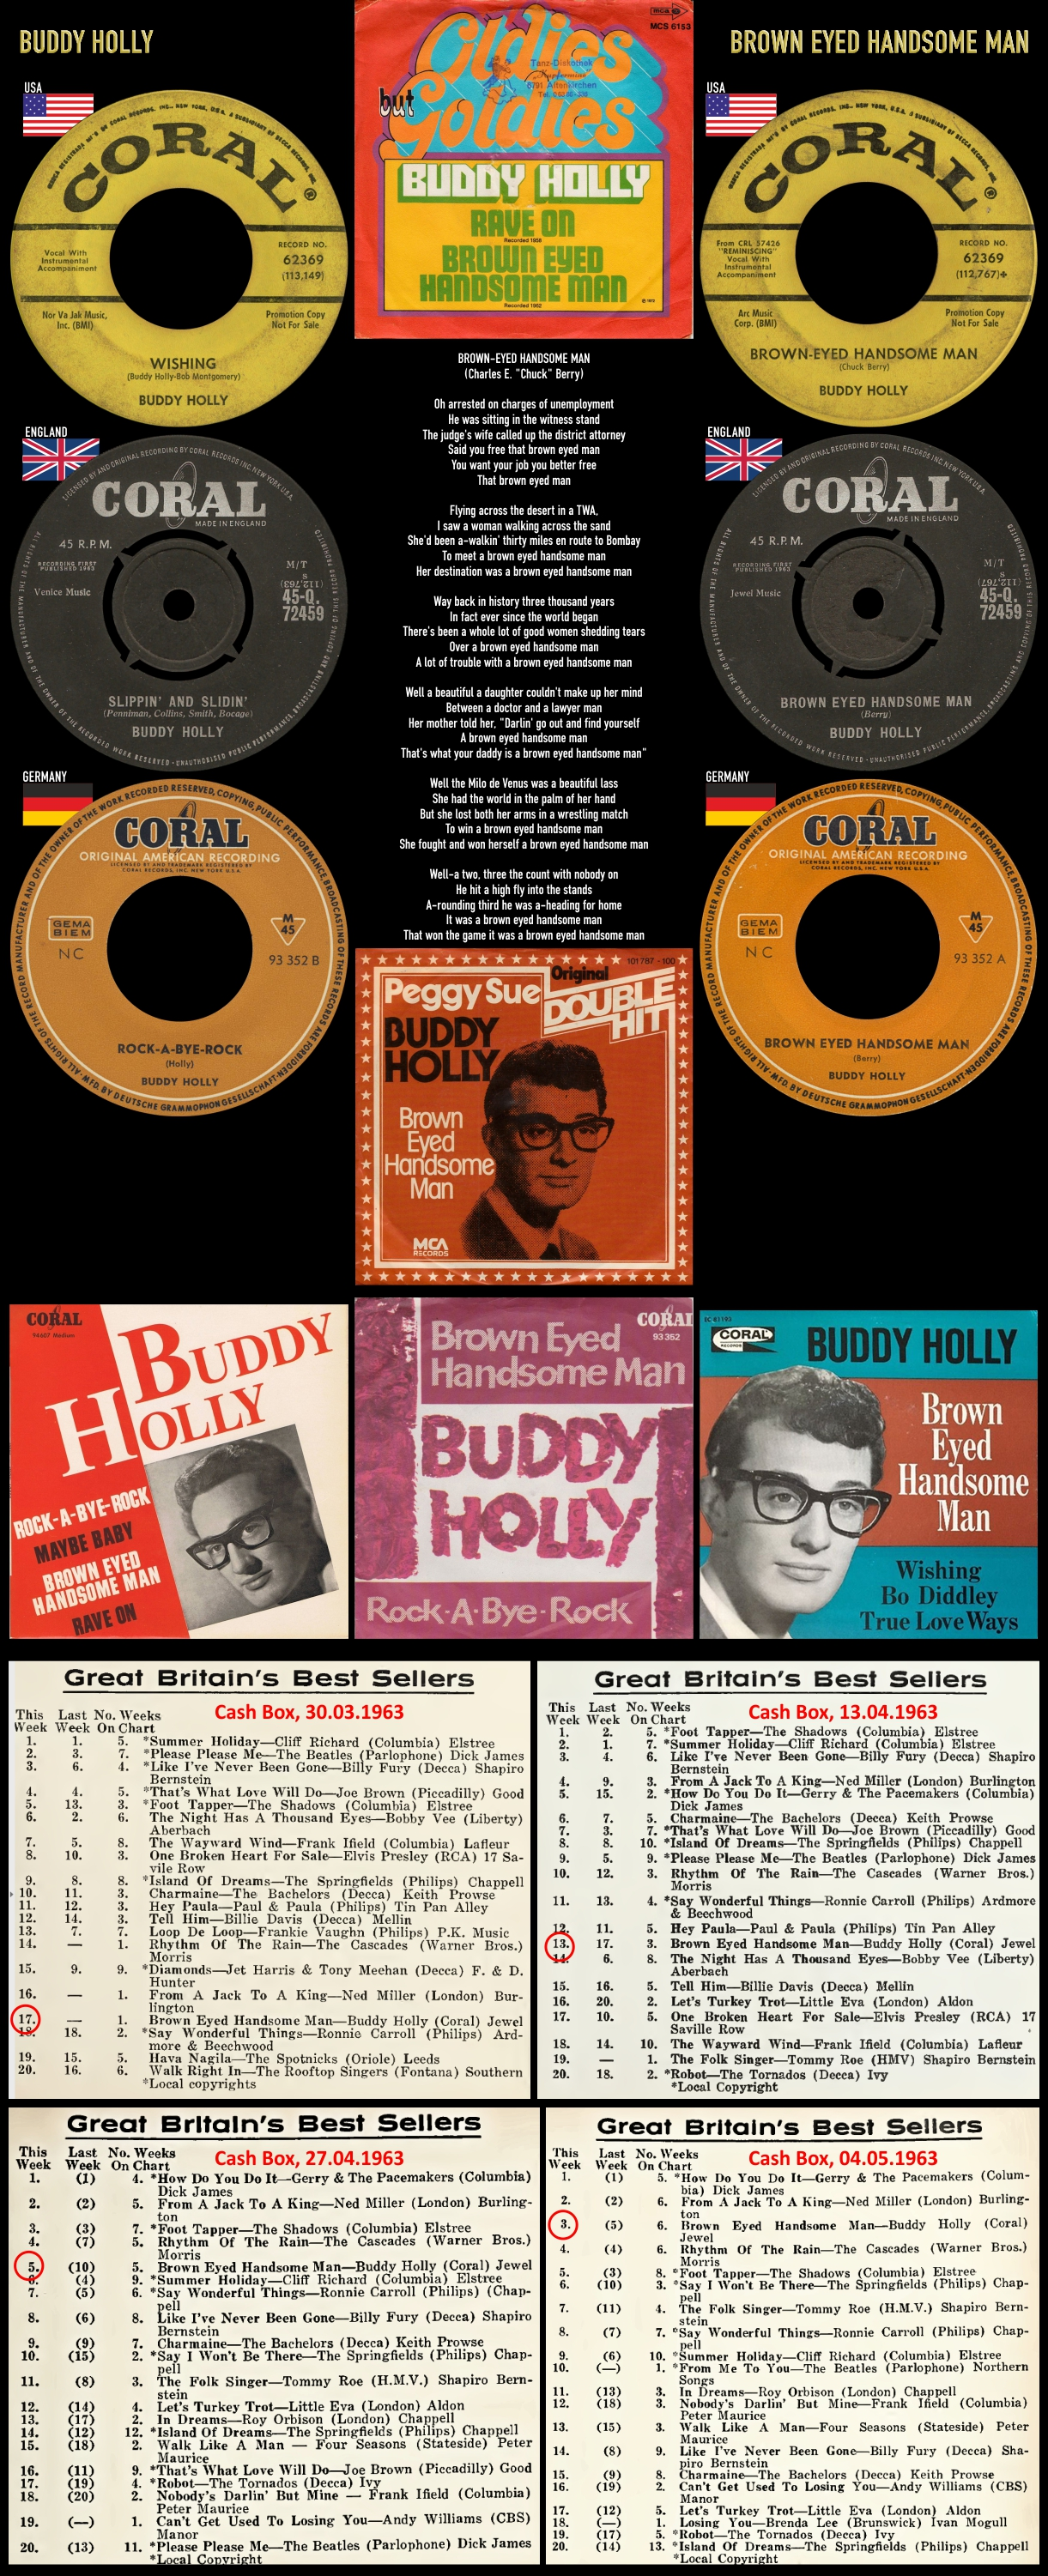 630316_Buddy Holly_Brown Eyed Handsome Man